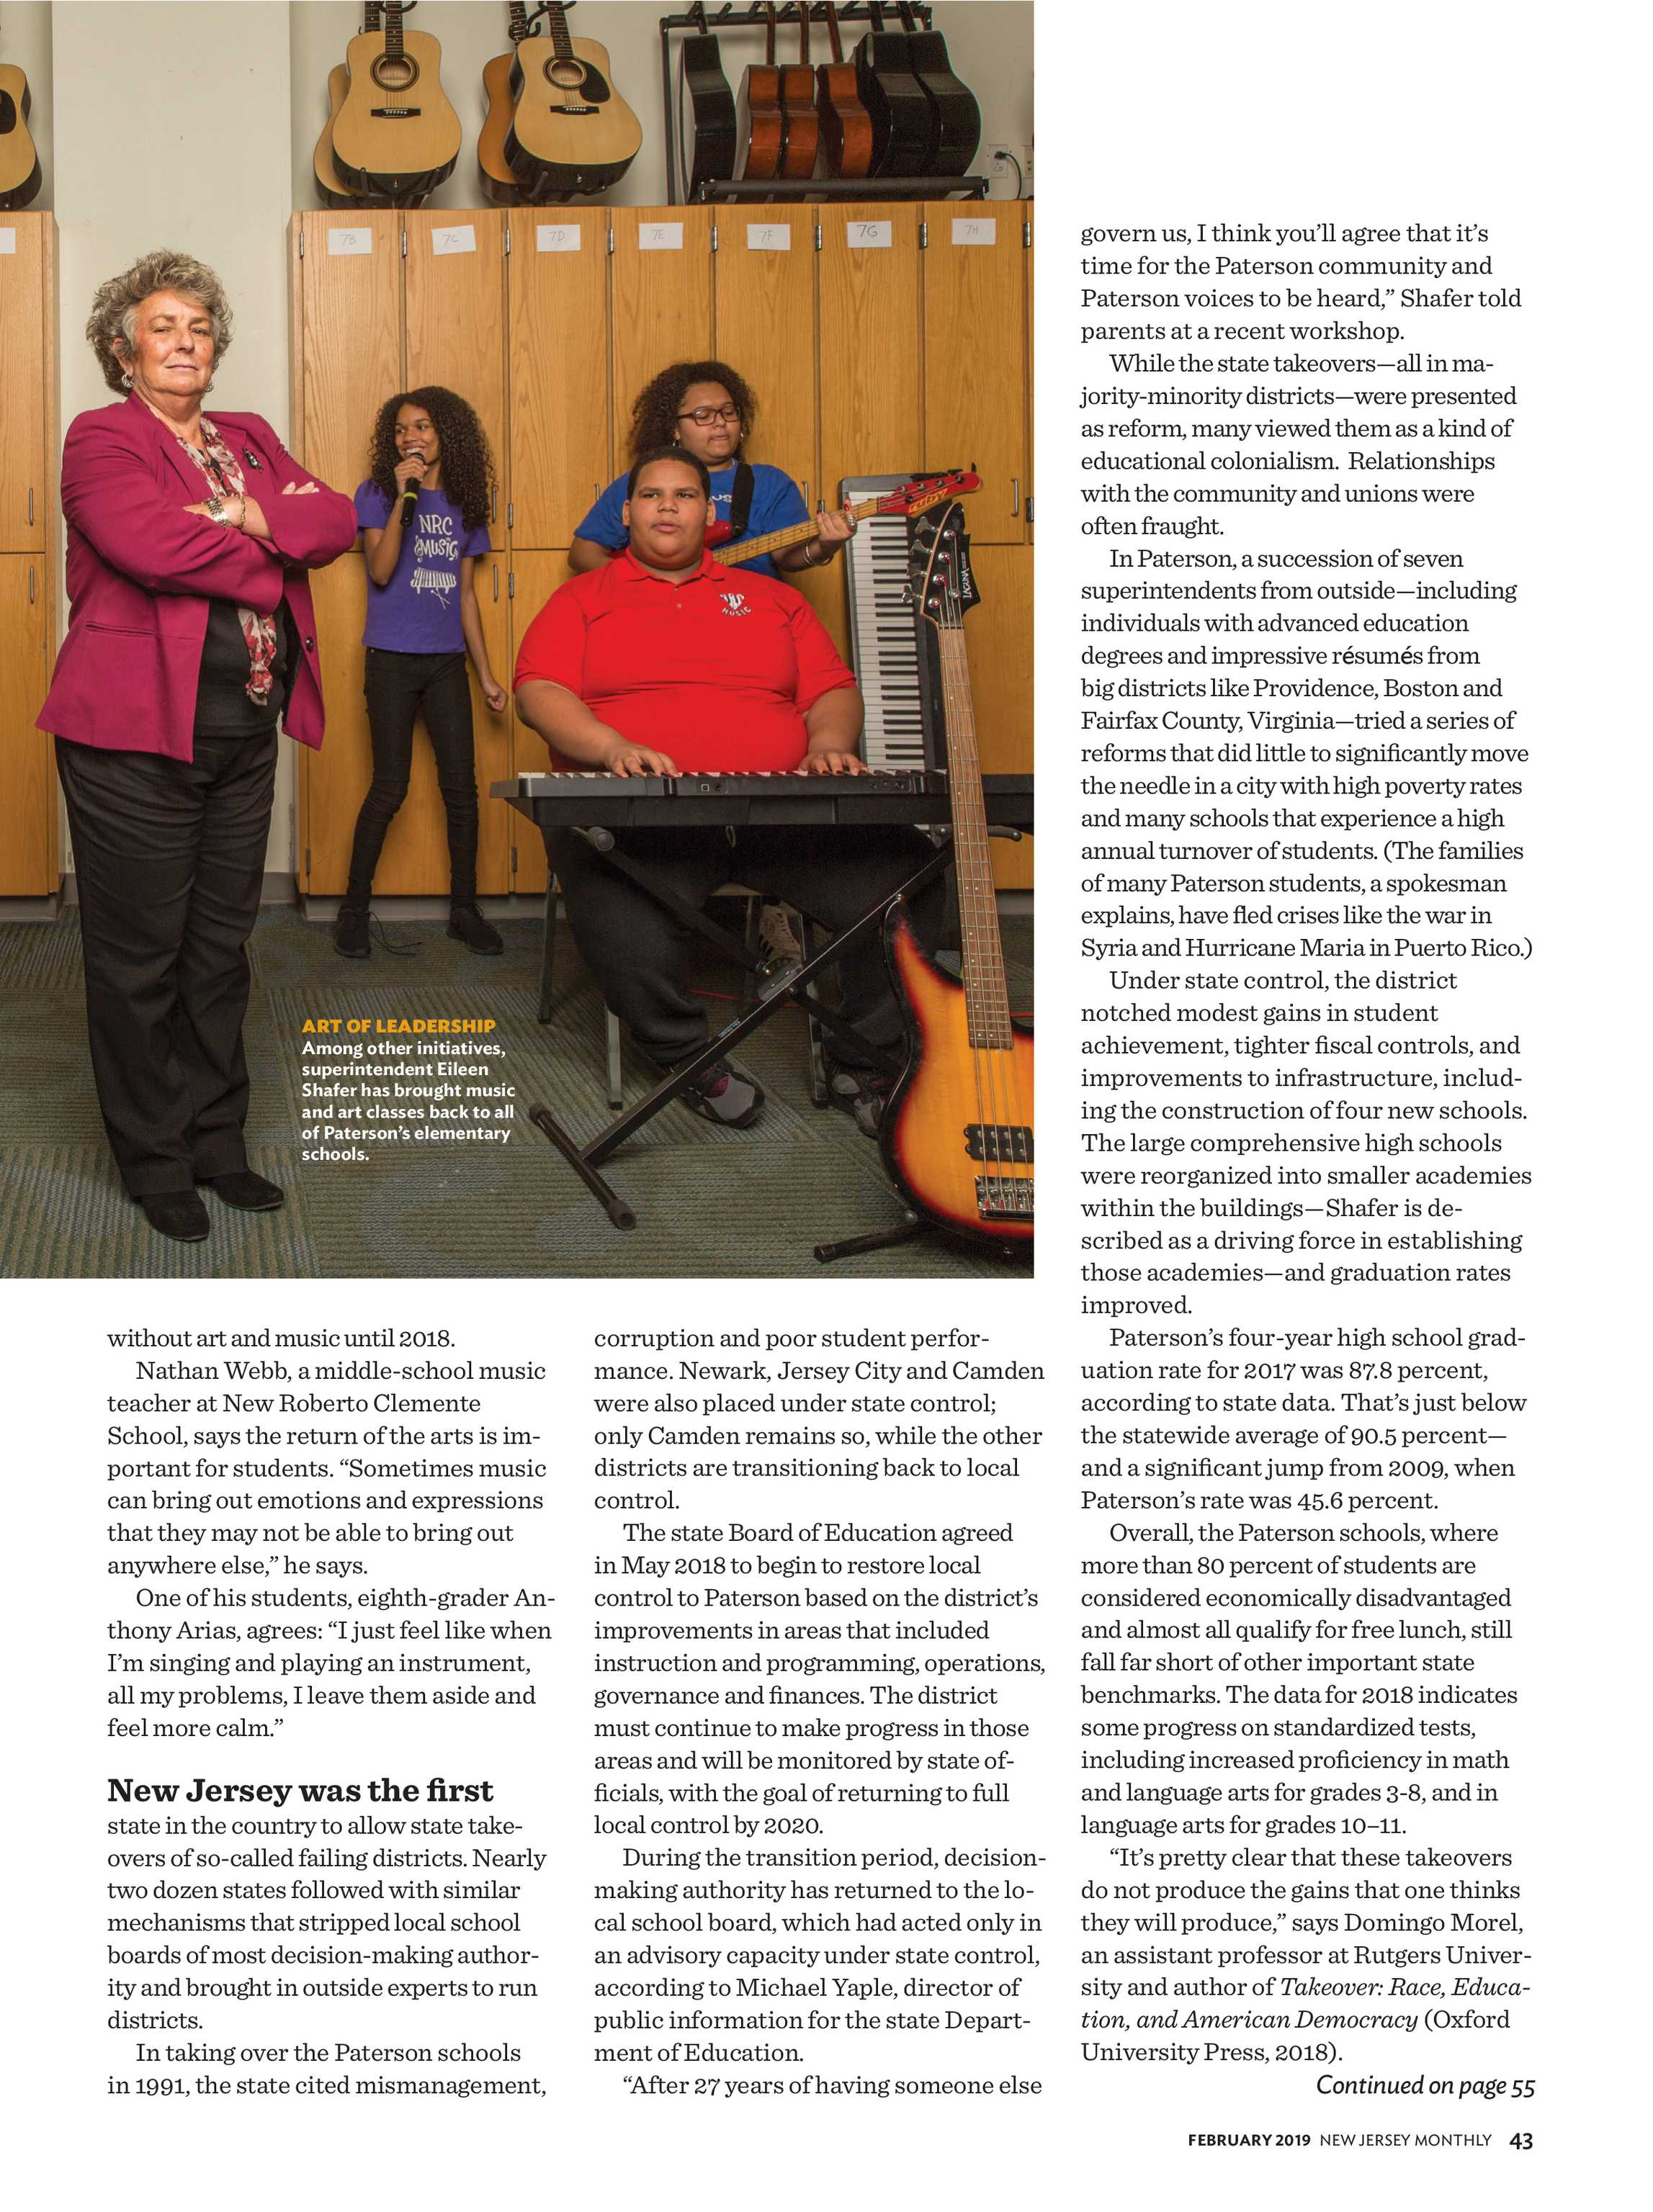 NJ Monthly - February 2019 - page 43